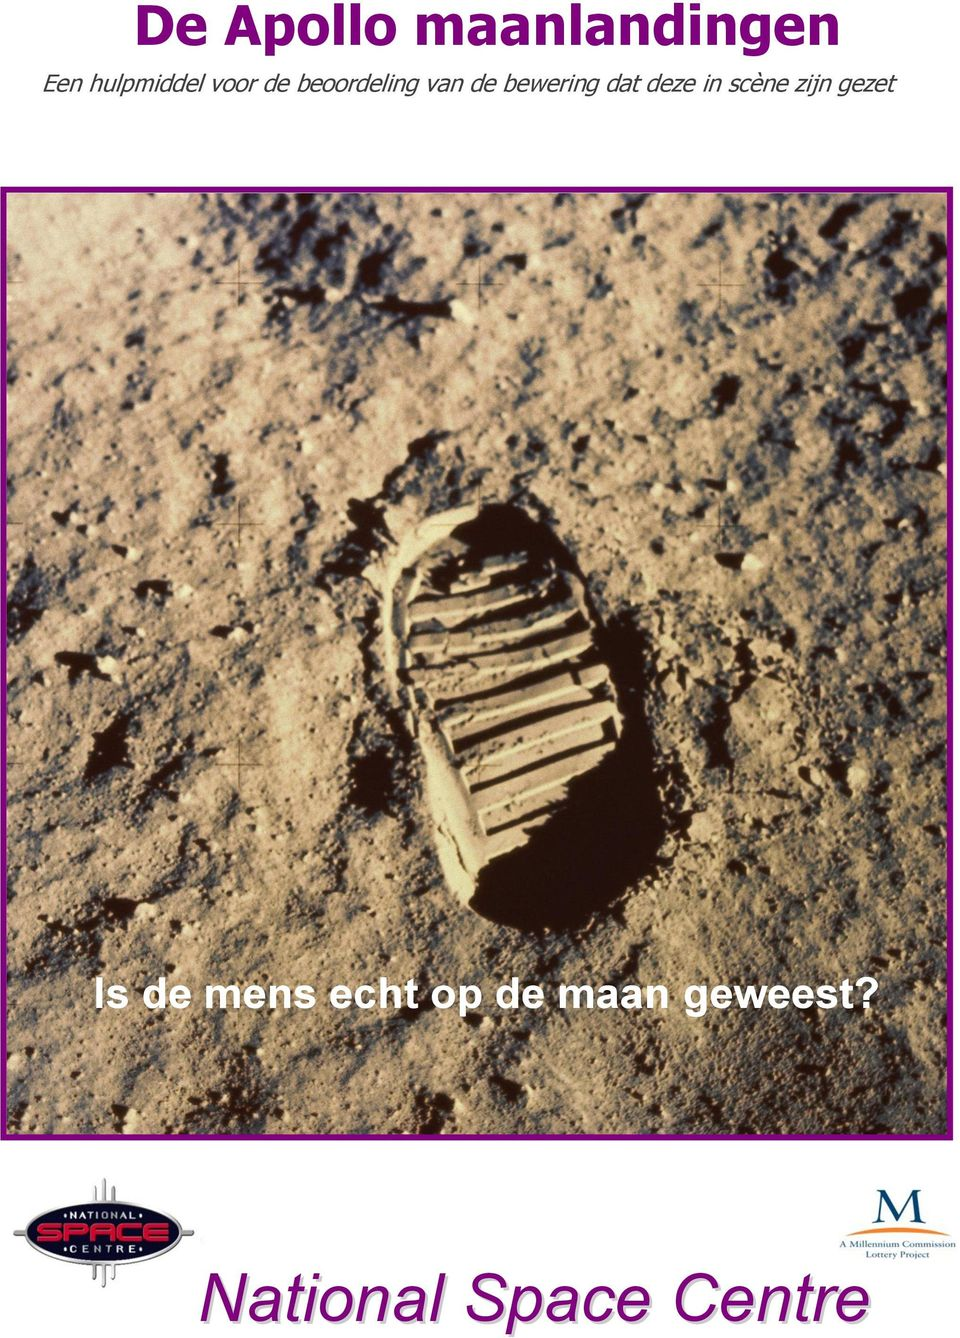 man really walk on the Moon?